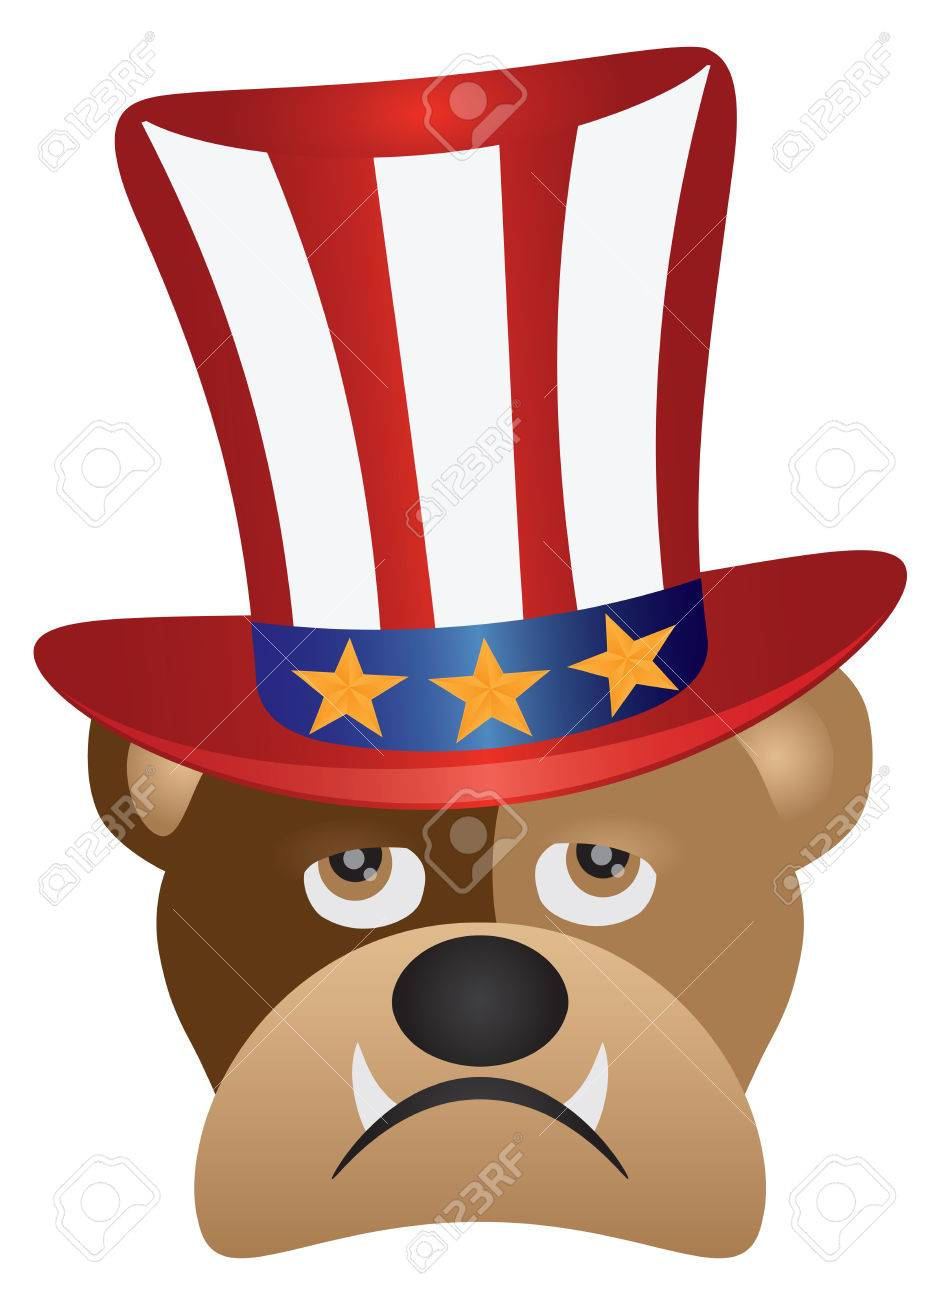 Fourth Of July Hat On English Bulldog With Red White Blue Stripes Royalty Free Cliparts Vectors And Stock Illustration Image 79649481